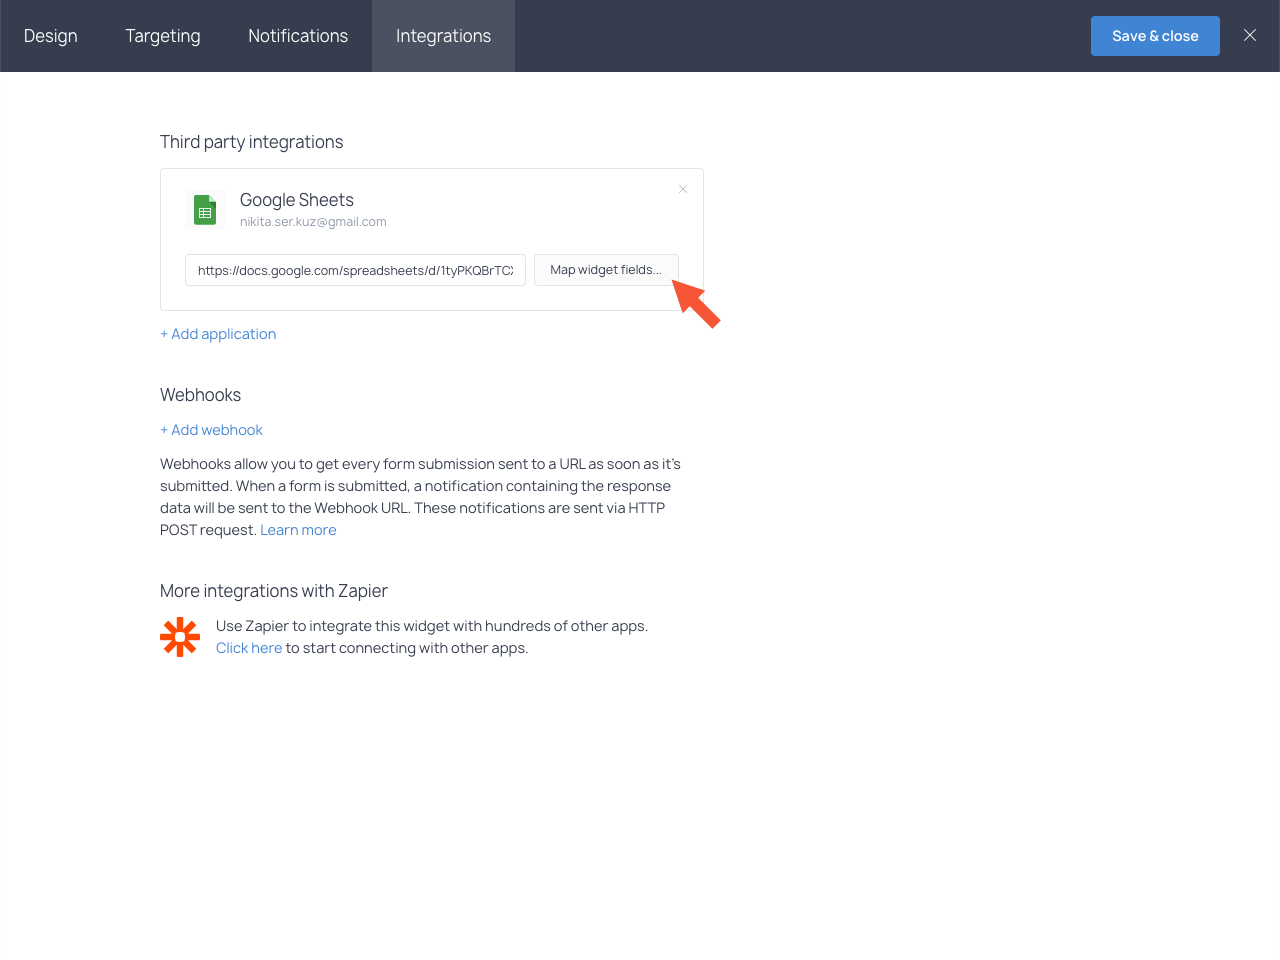 Map widget fields button highlighted in the Integrations section